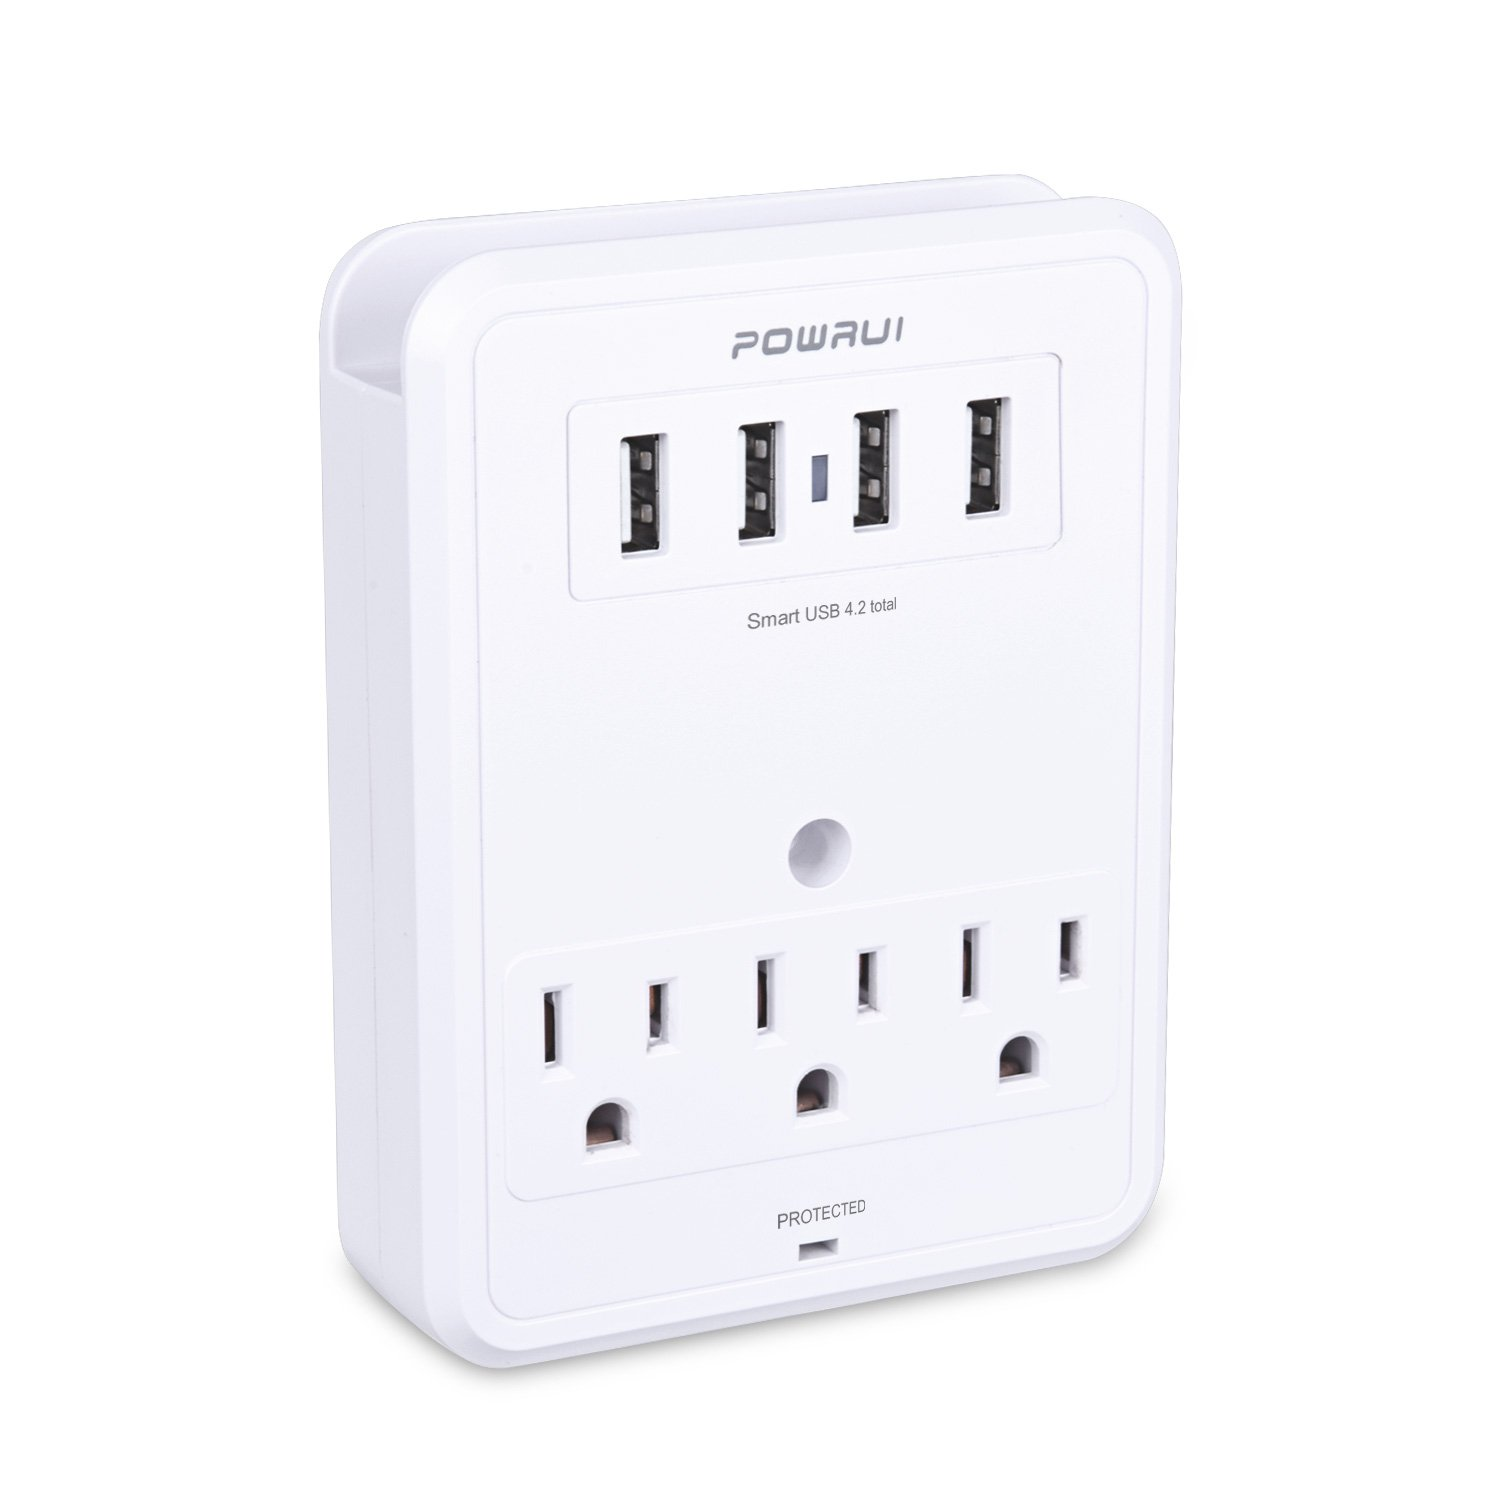 POWRUI Multi Wall Outlet Adapter Surge Protector 1680 Joules with 4-USB ports Wall Charger, Wall Mount Charging Center 3 Outlet Wall Mount Adapter for Home, School, Office, ETL Certified